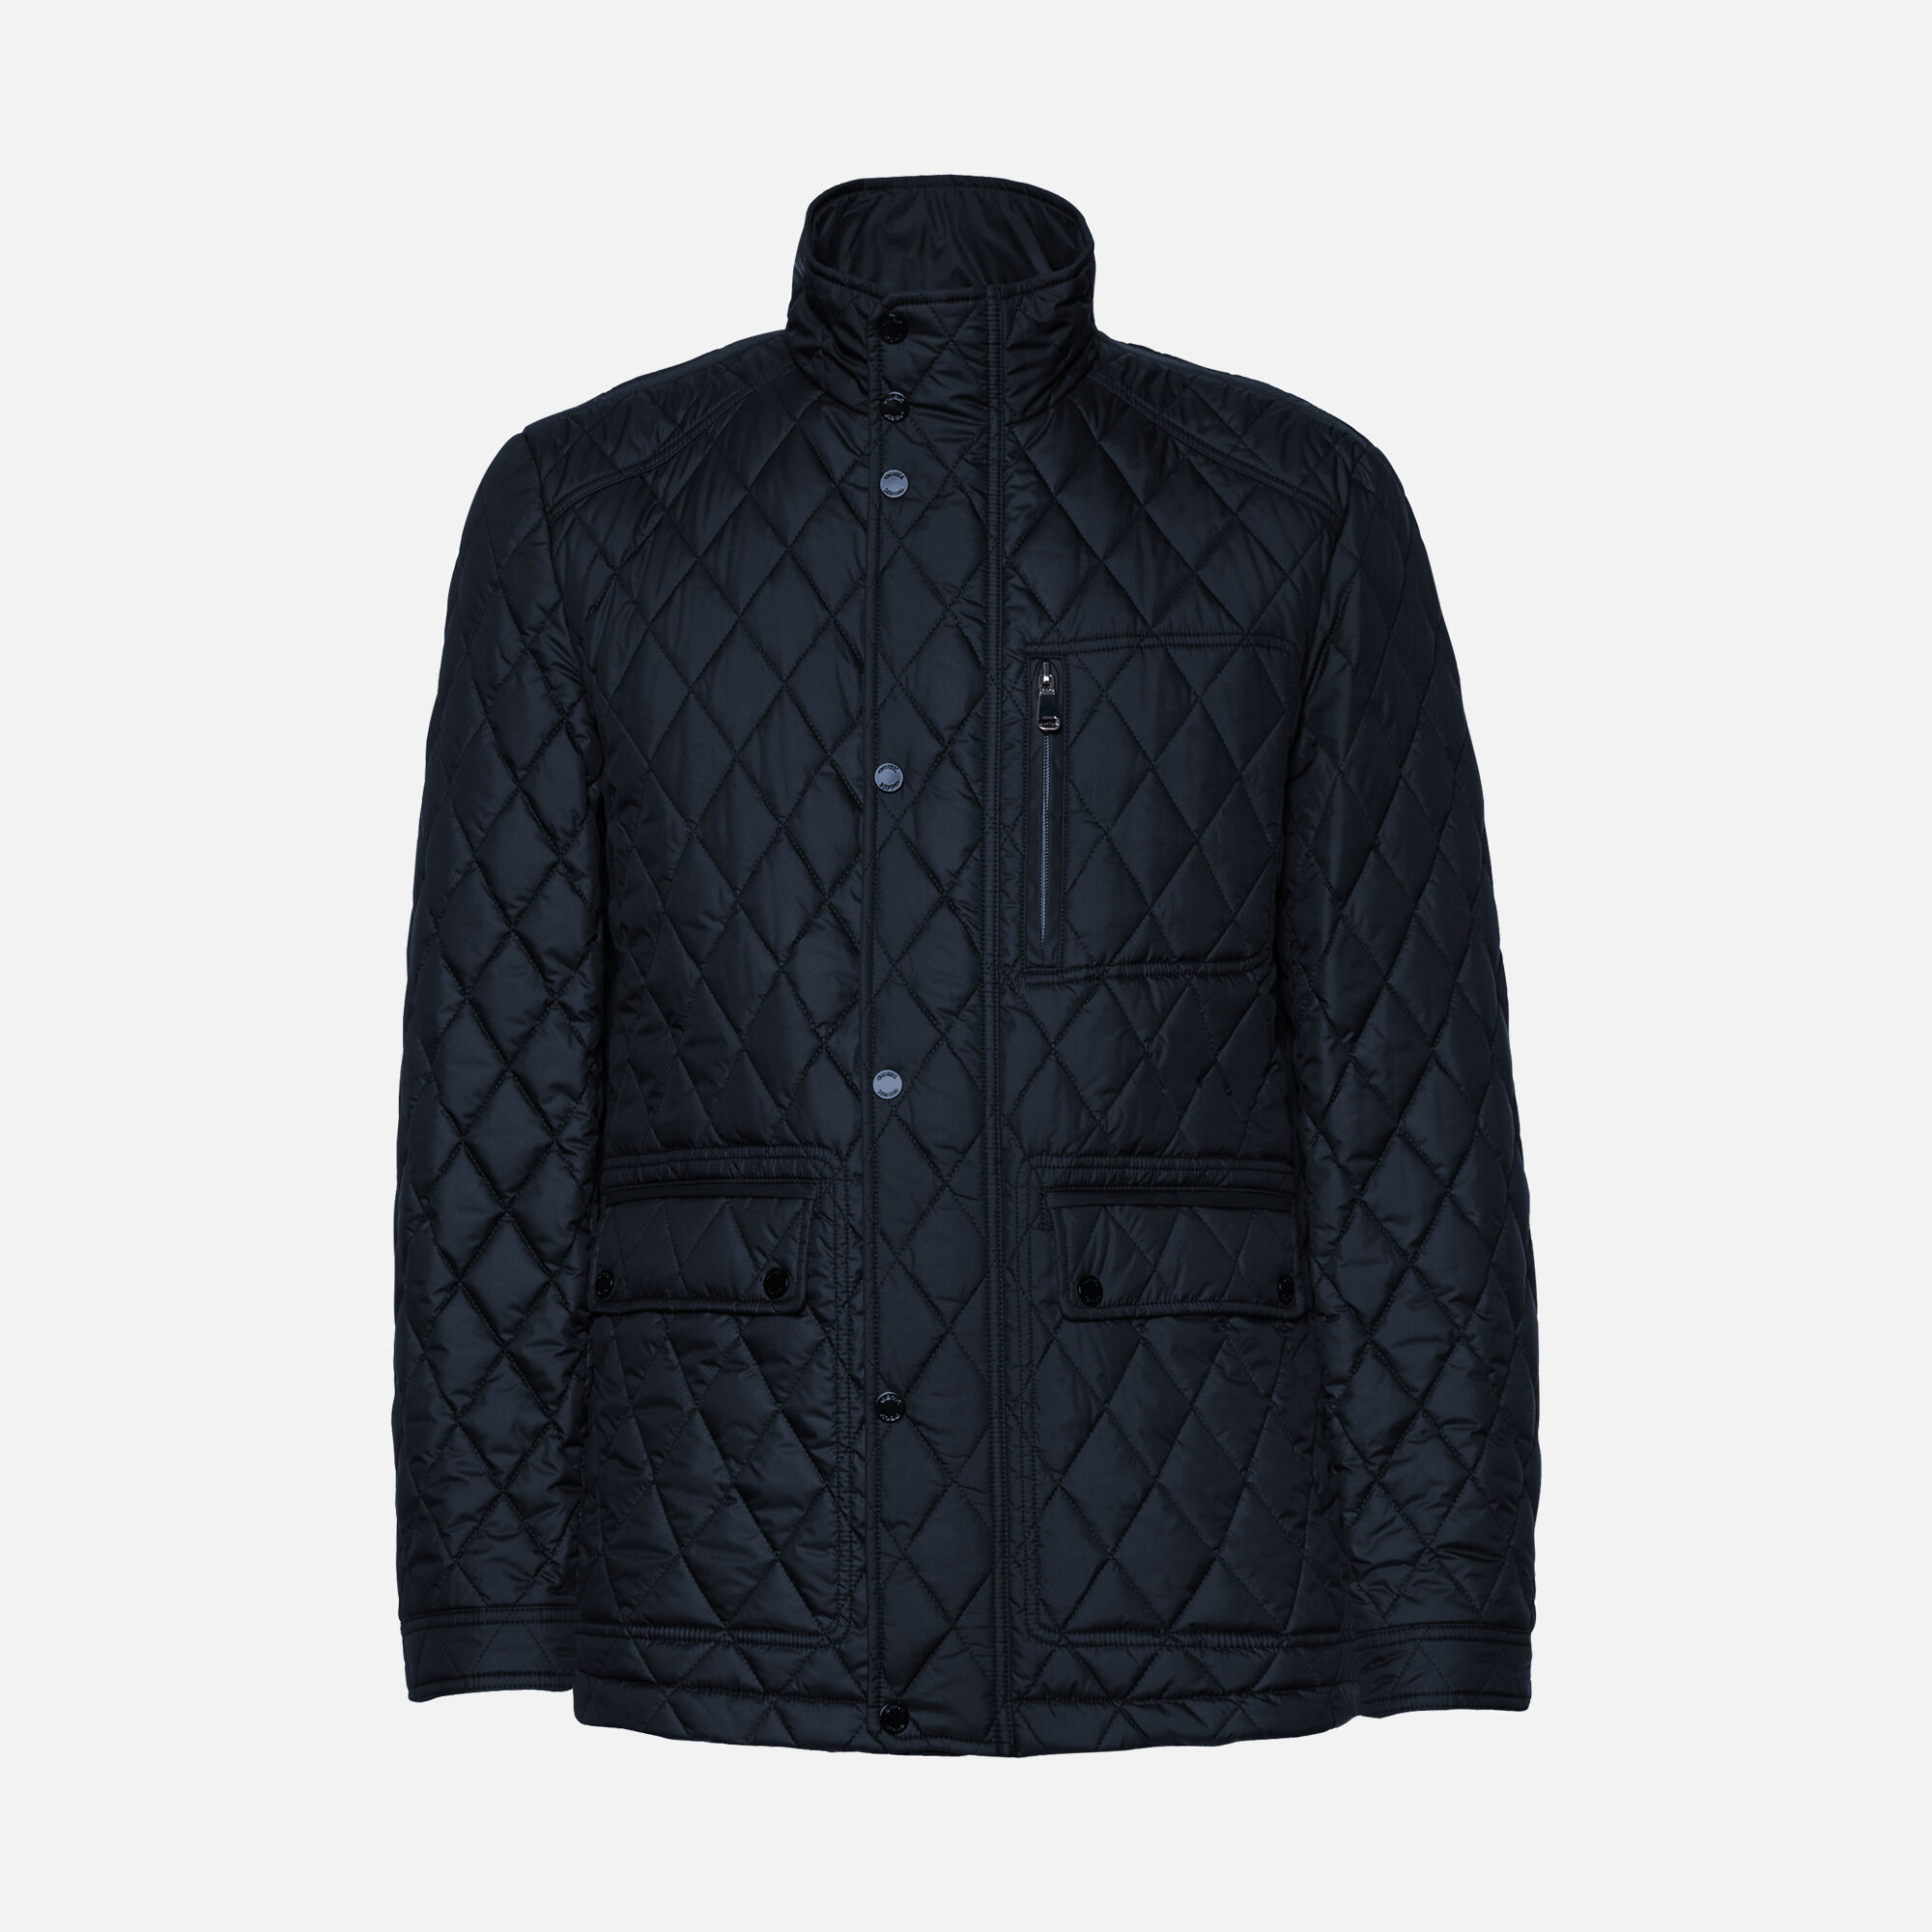 KRISTOF MAN ANORAKS from men | Geox